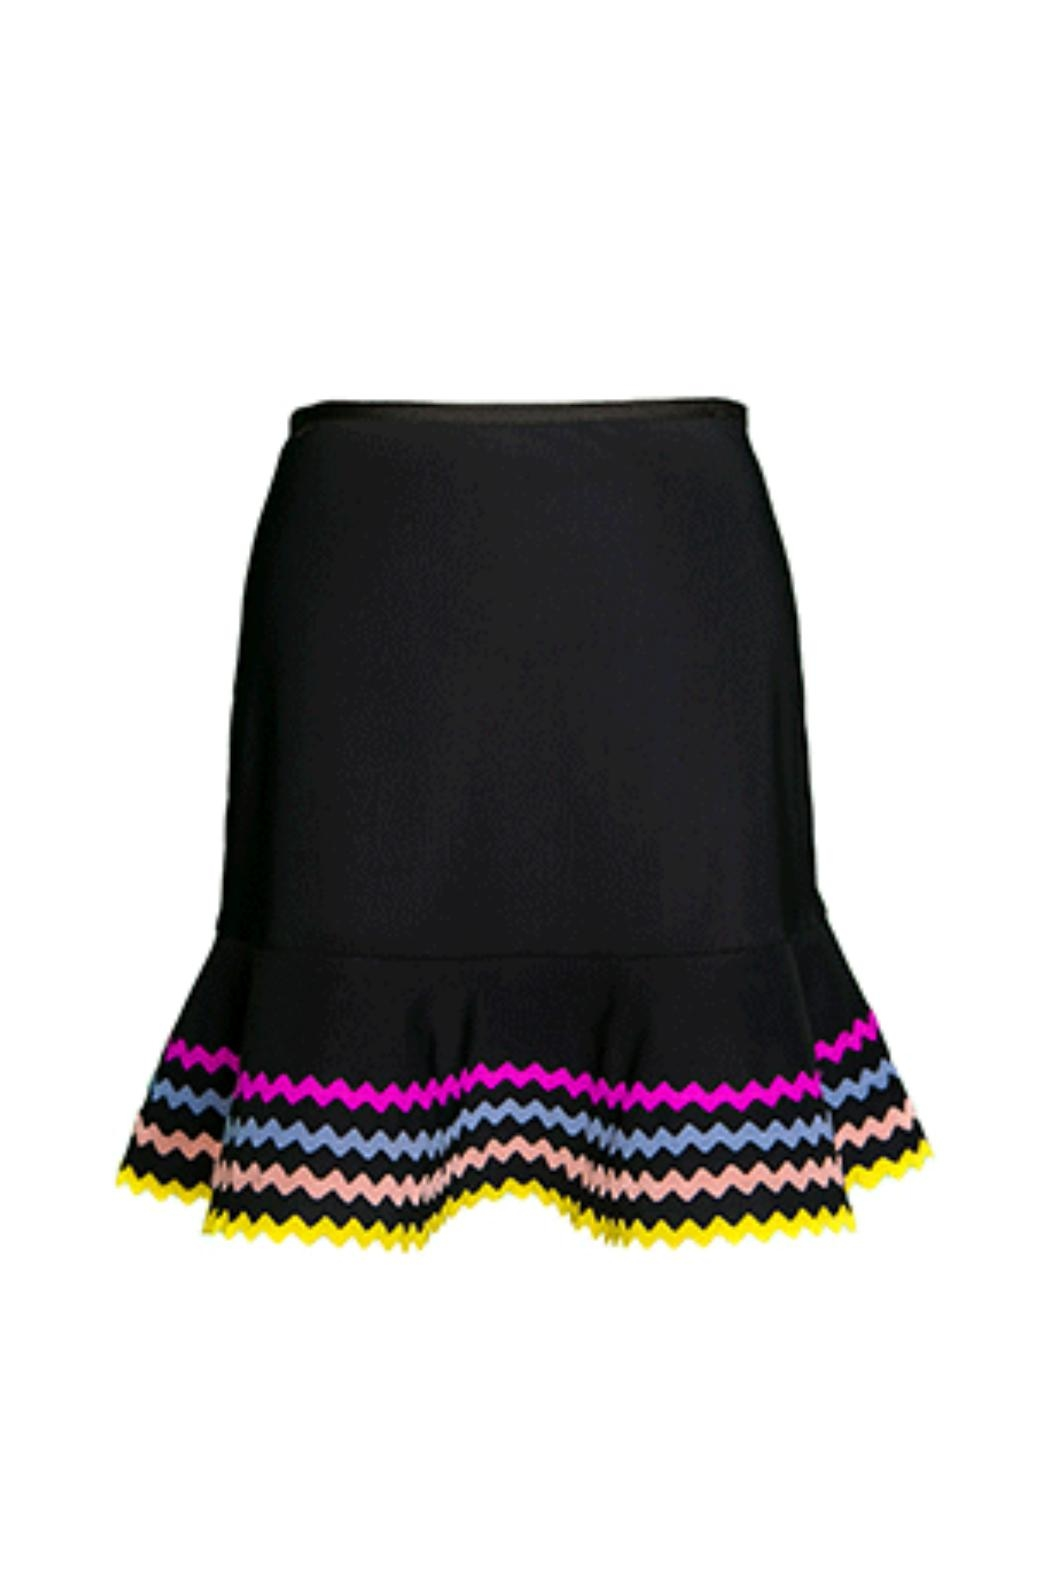 Karla Colletto Zola Pull-On Skirt - Main Image